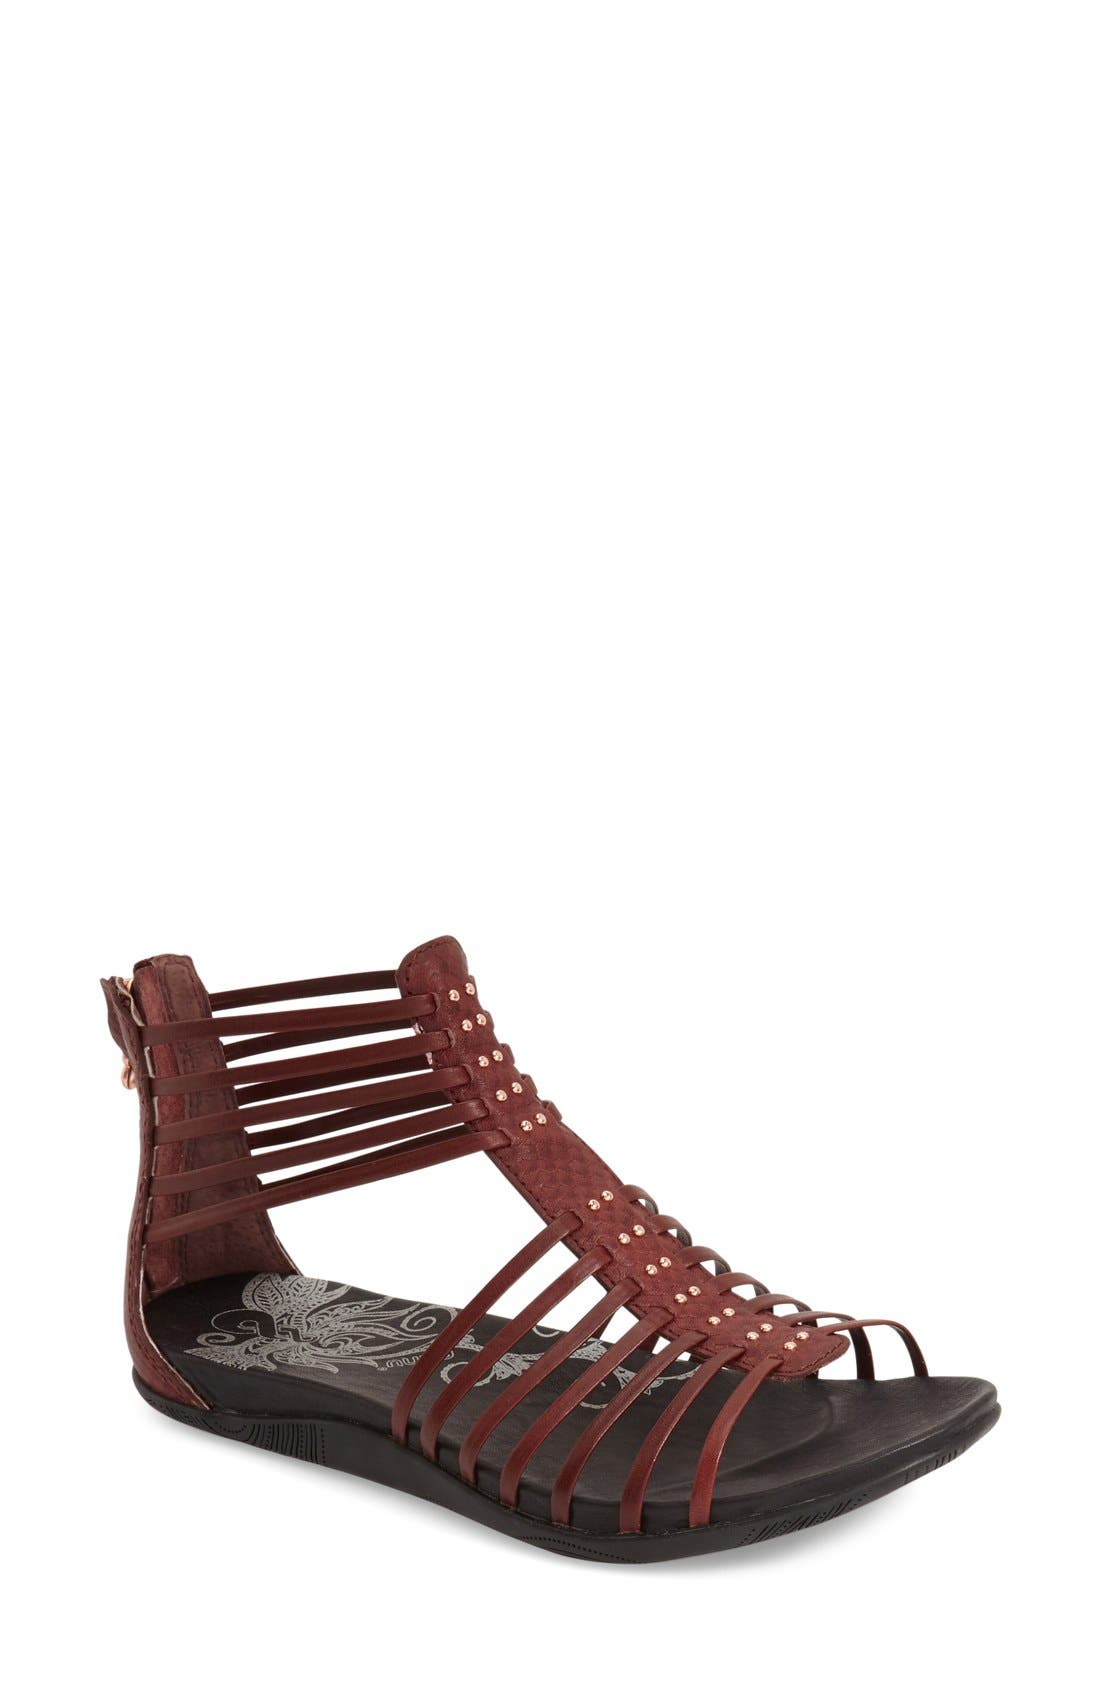 Alternate Image 1 Selected - Ahnu 'Asha' Sandal (Women)